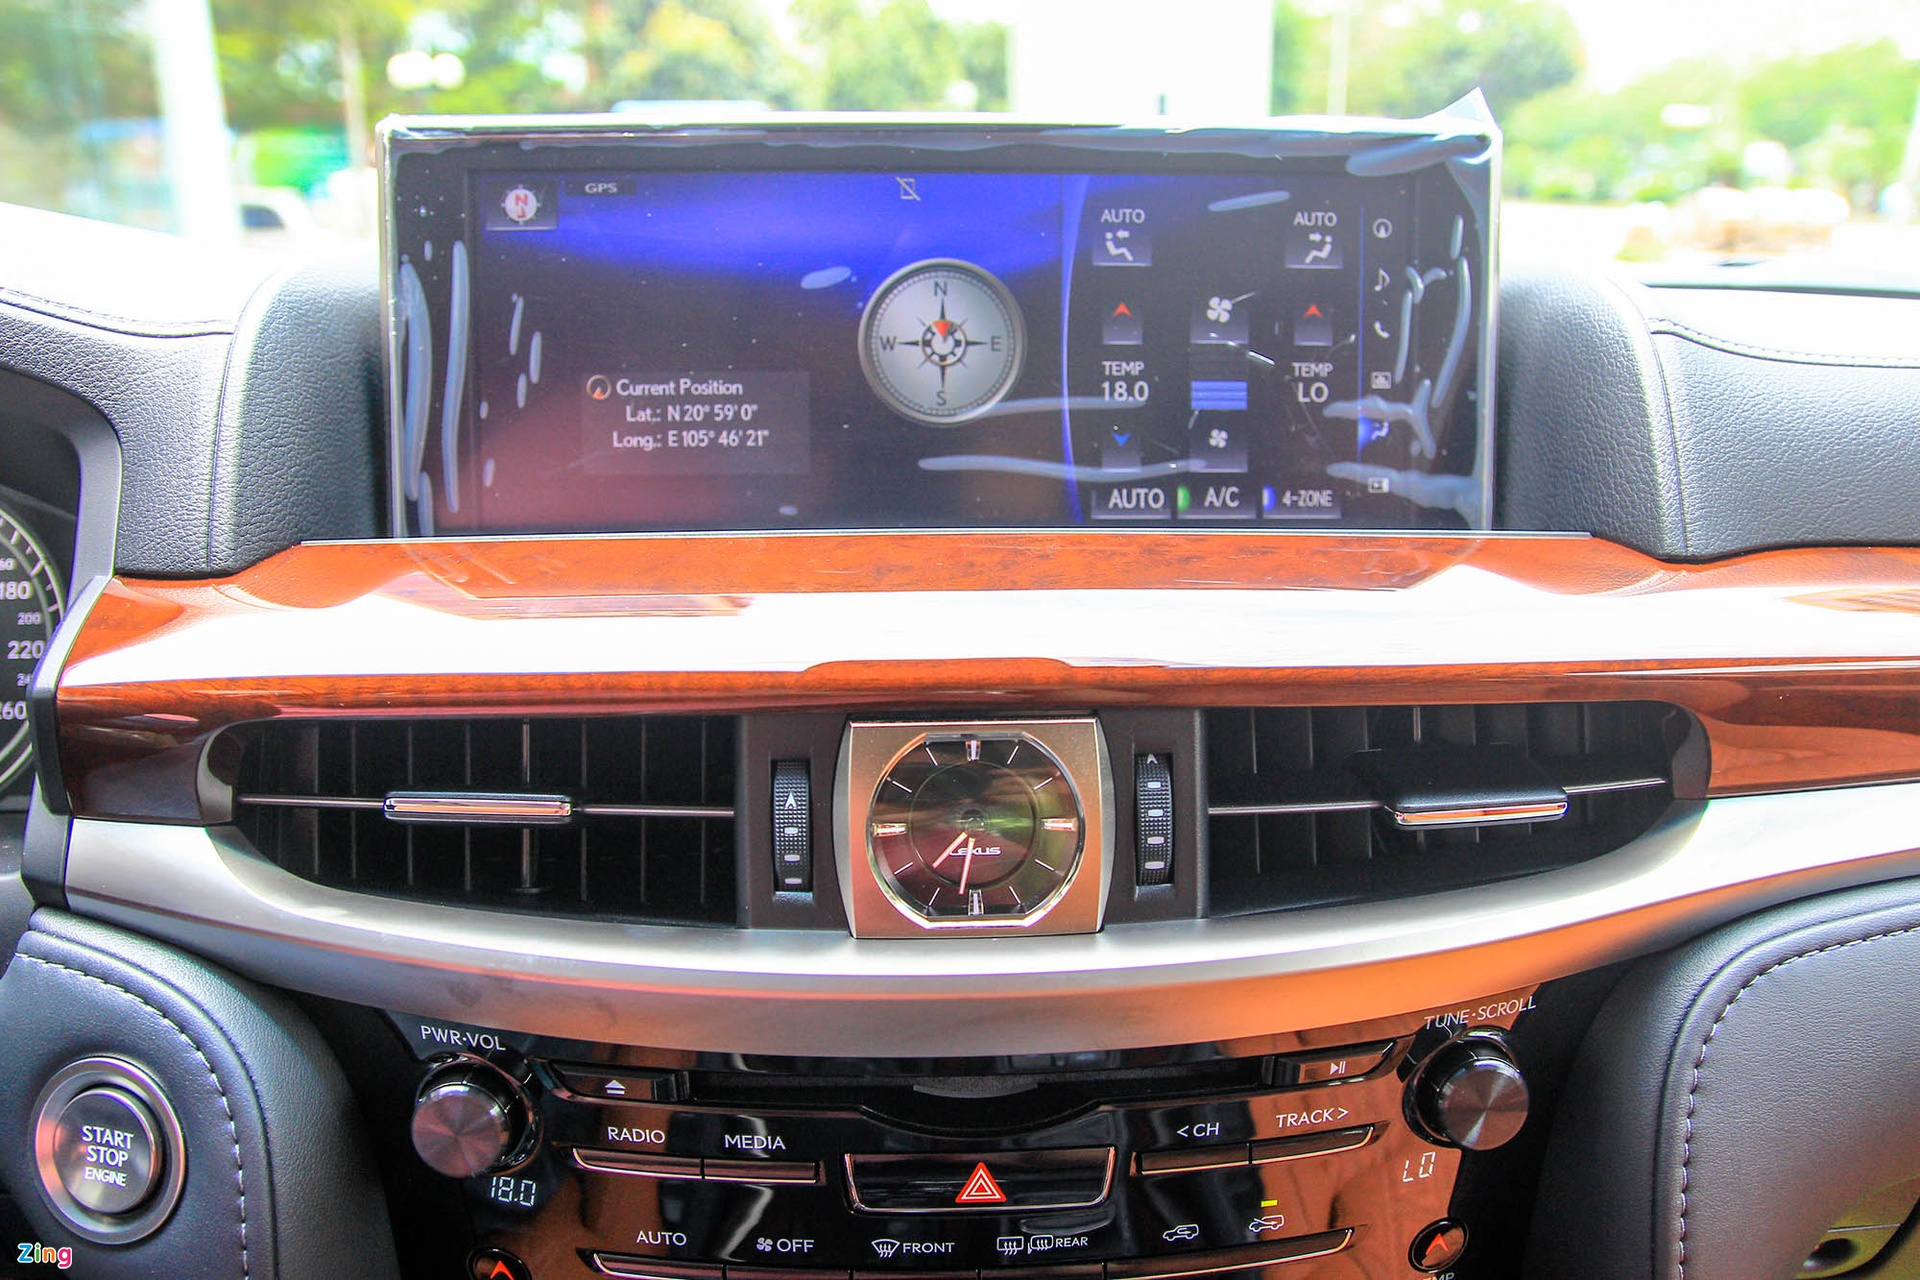 Lexus LX570 Supersport do MBS anh 11